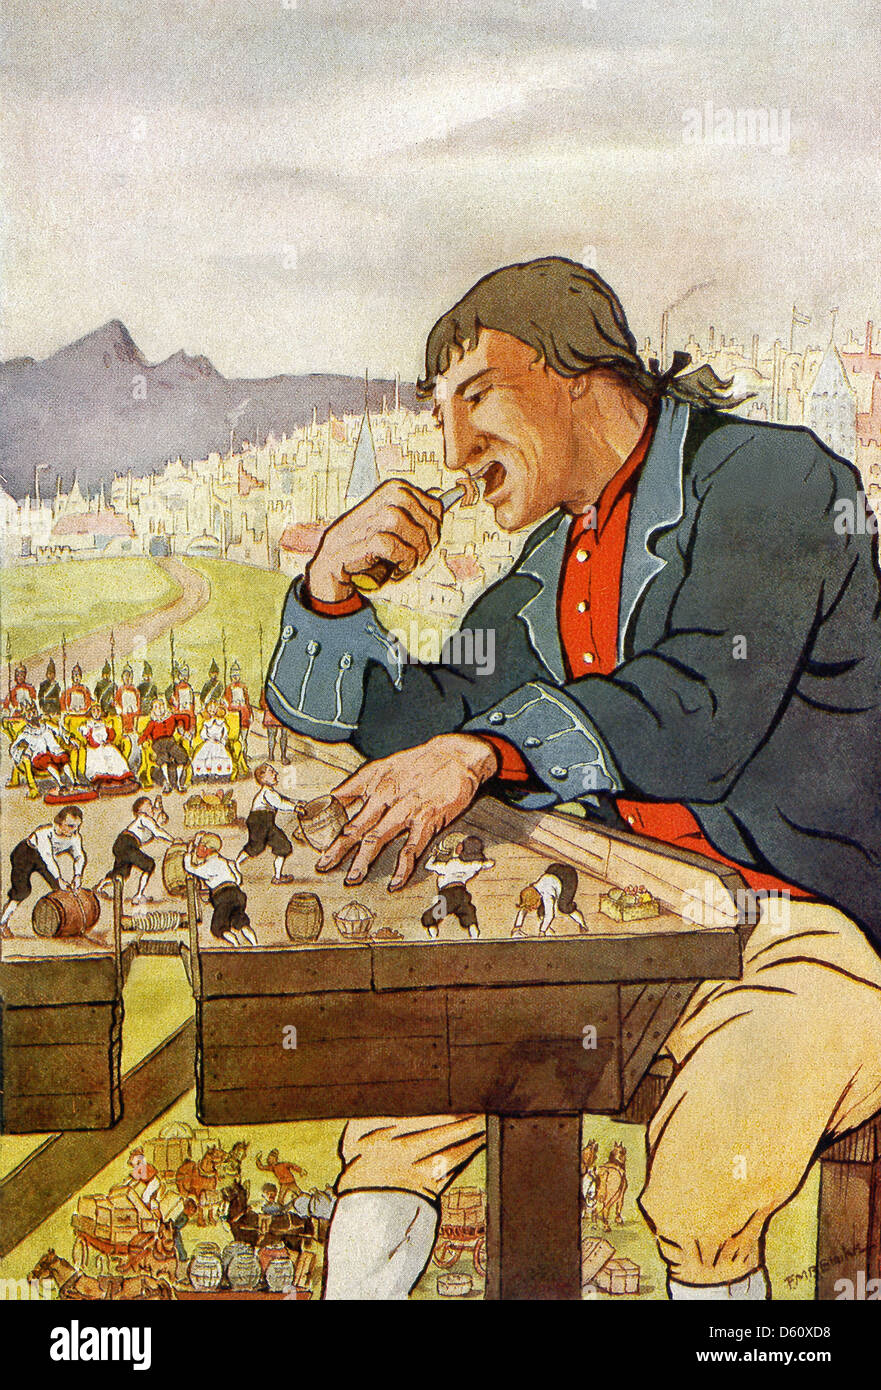 analysis of the main character in gullivers travels written by jonathan swift Jonathan swift was a snarky, snarky bitch gulliver's written in the old style where listing off occurrences constituted gulliver's travels, jonathan swift.